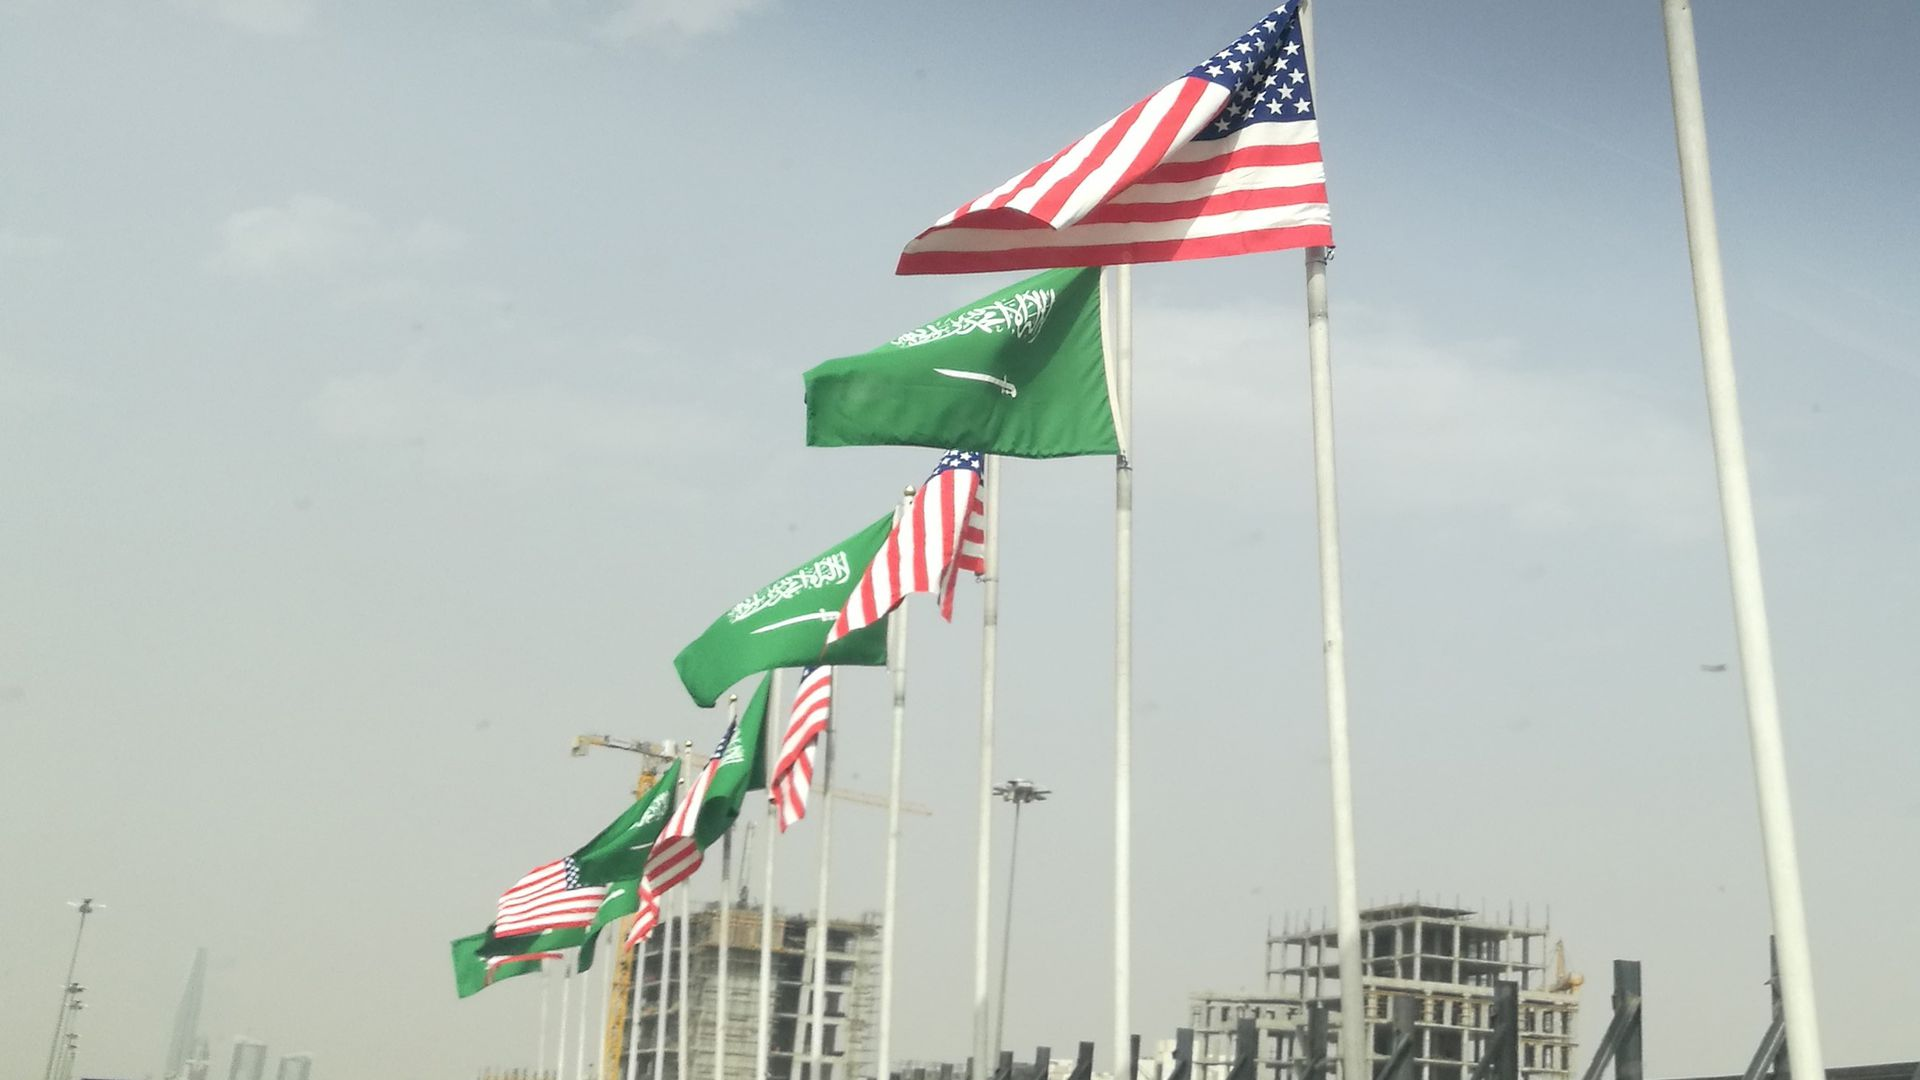 Flags of both United States and Saudi Arabia are raised ahead of U.S President Donald Trump's visit to Saudi Arabia.